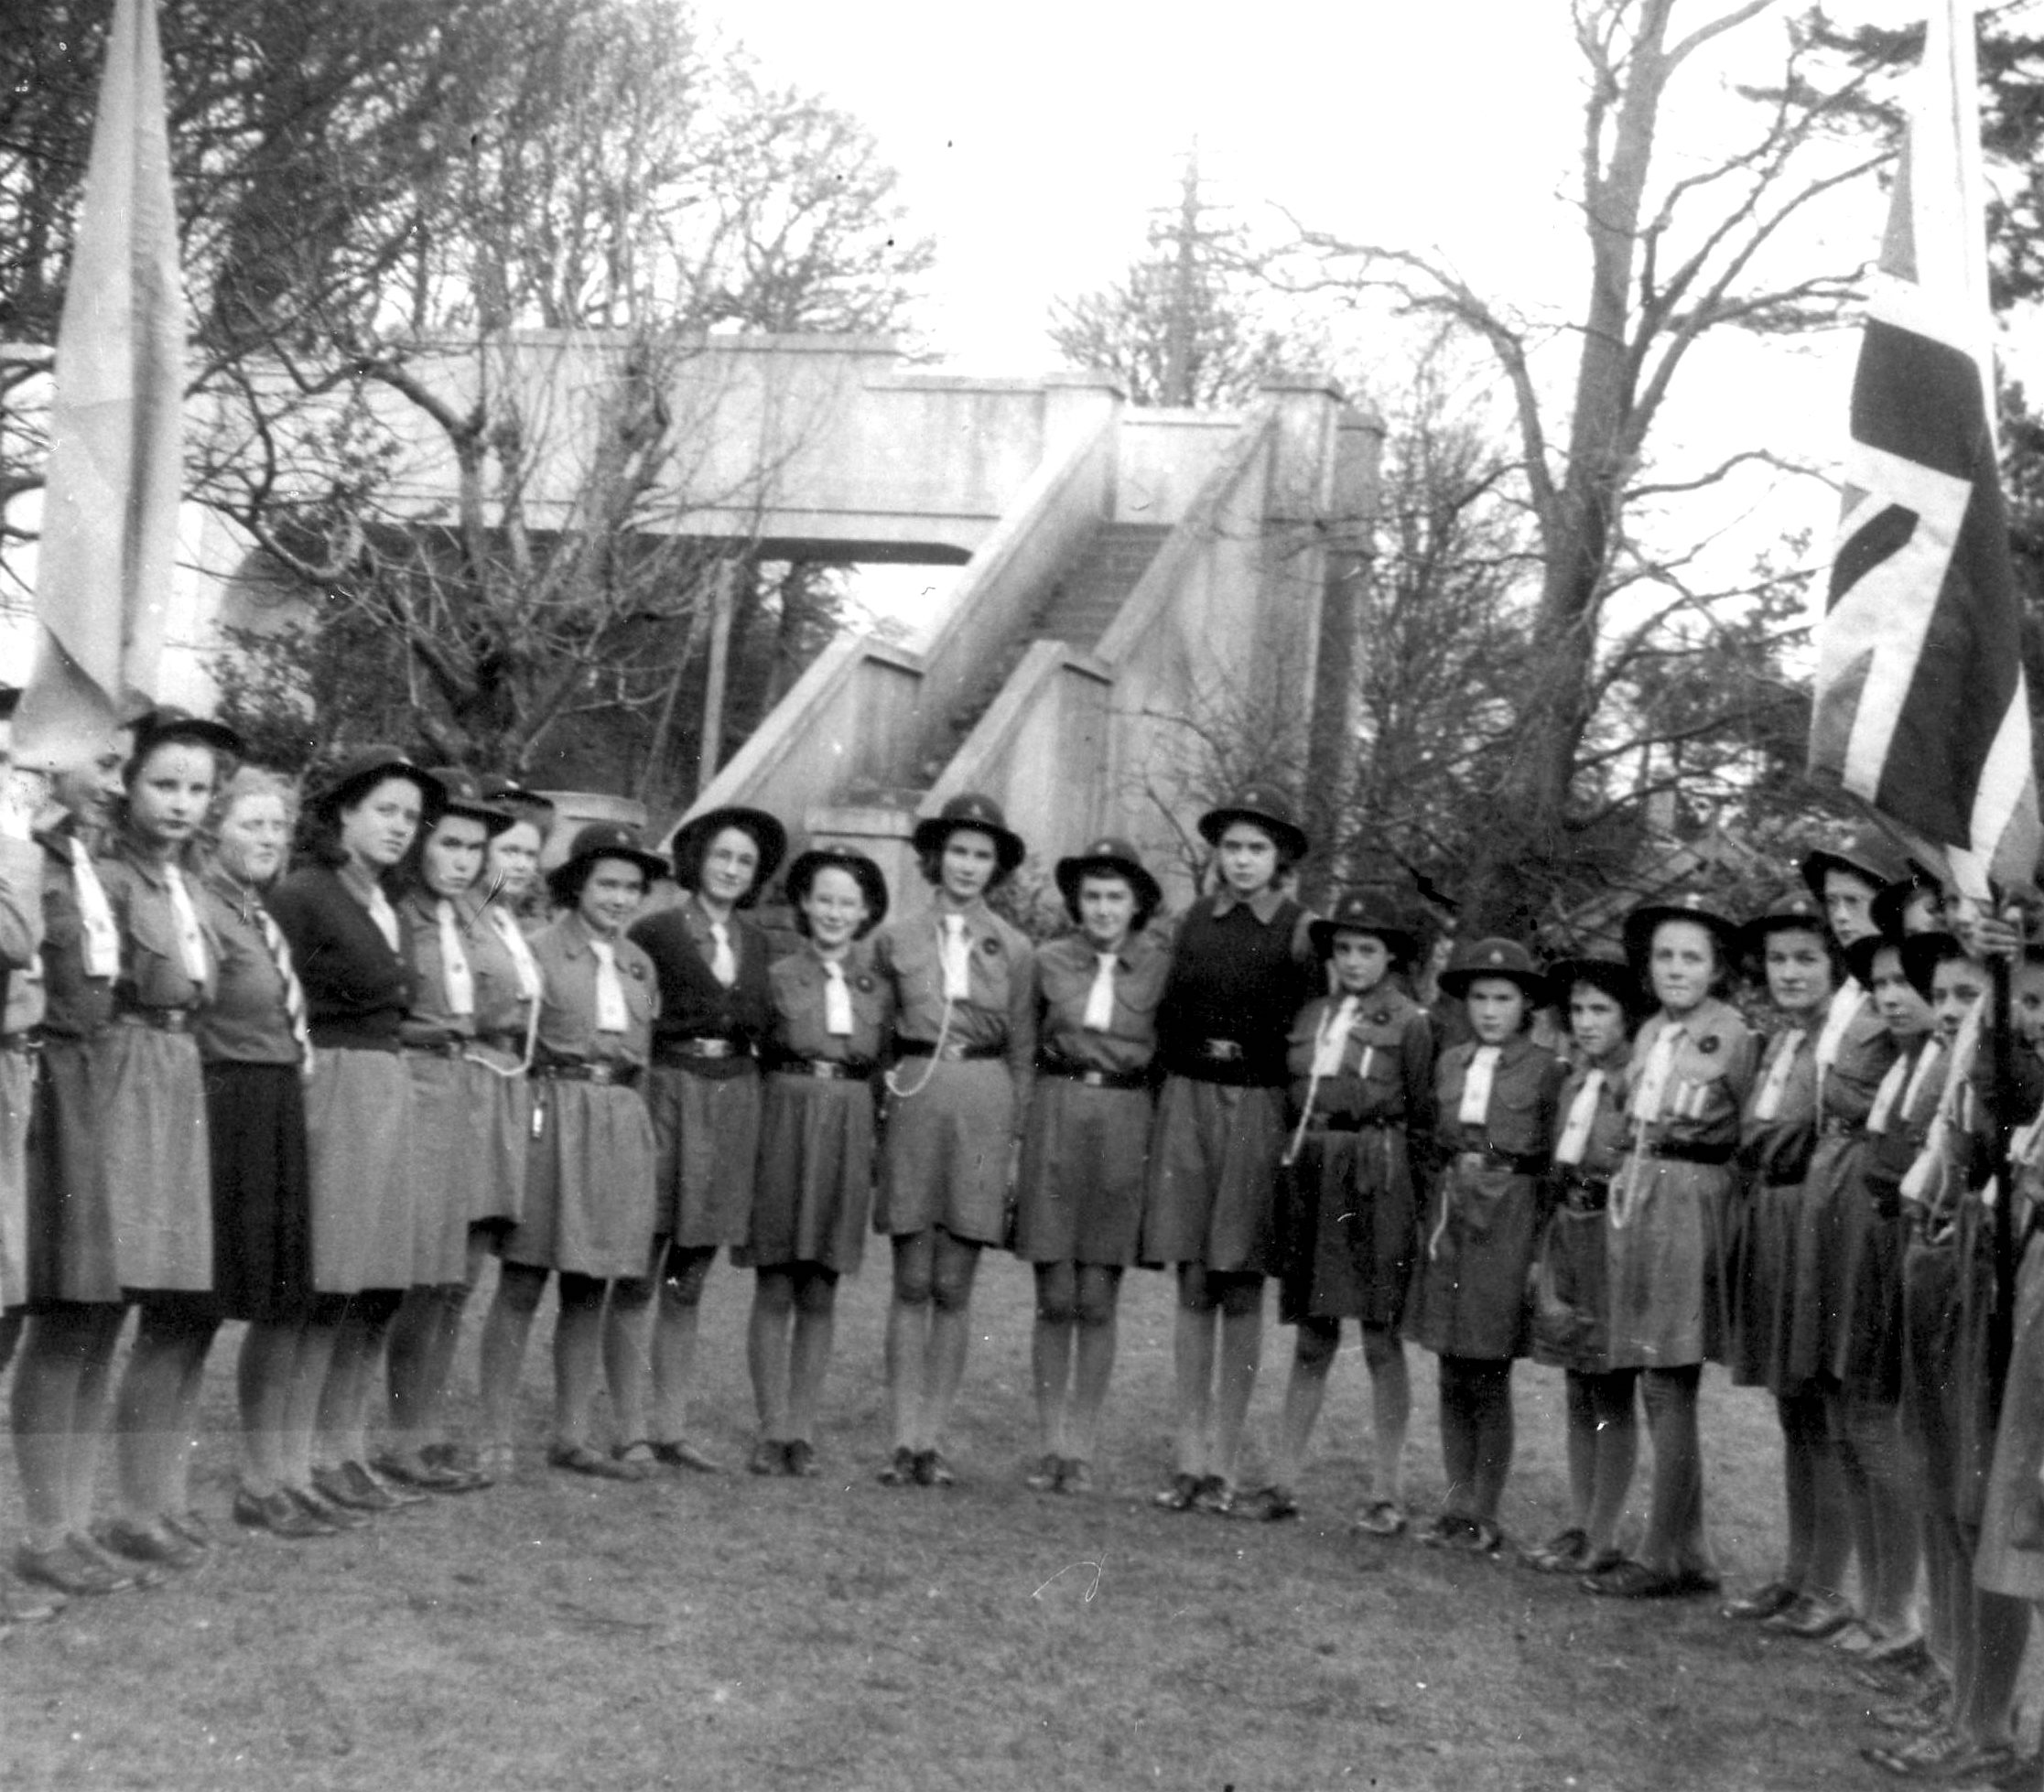 Girl Guides in front of the School Bridge in the 1940s